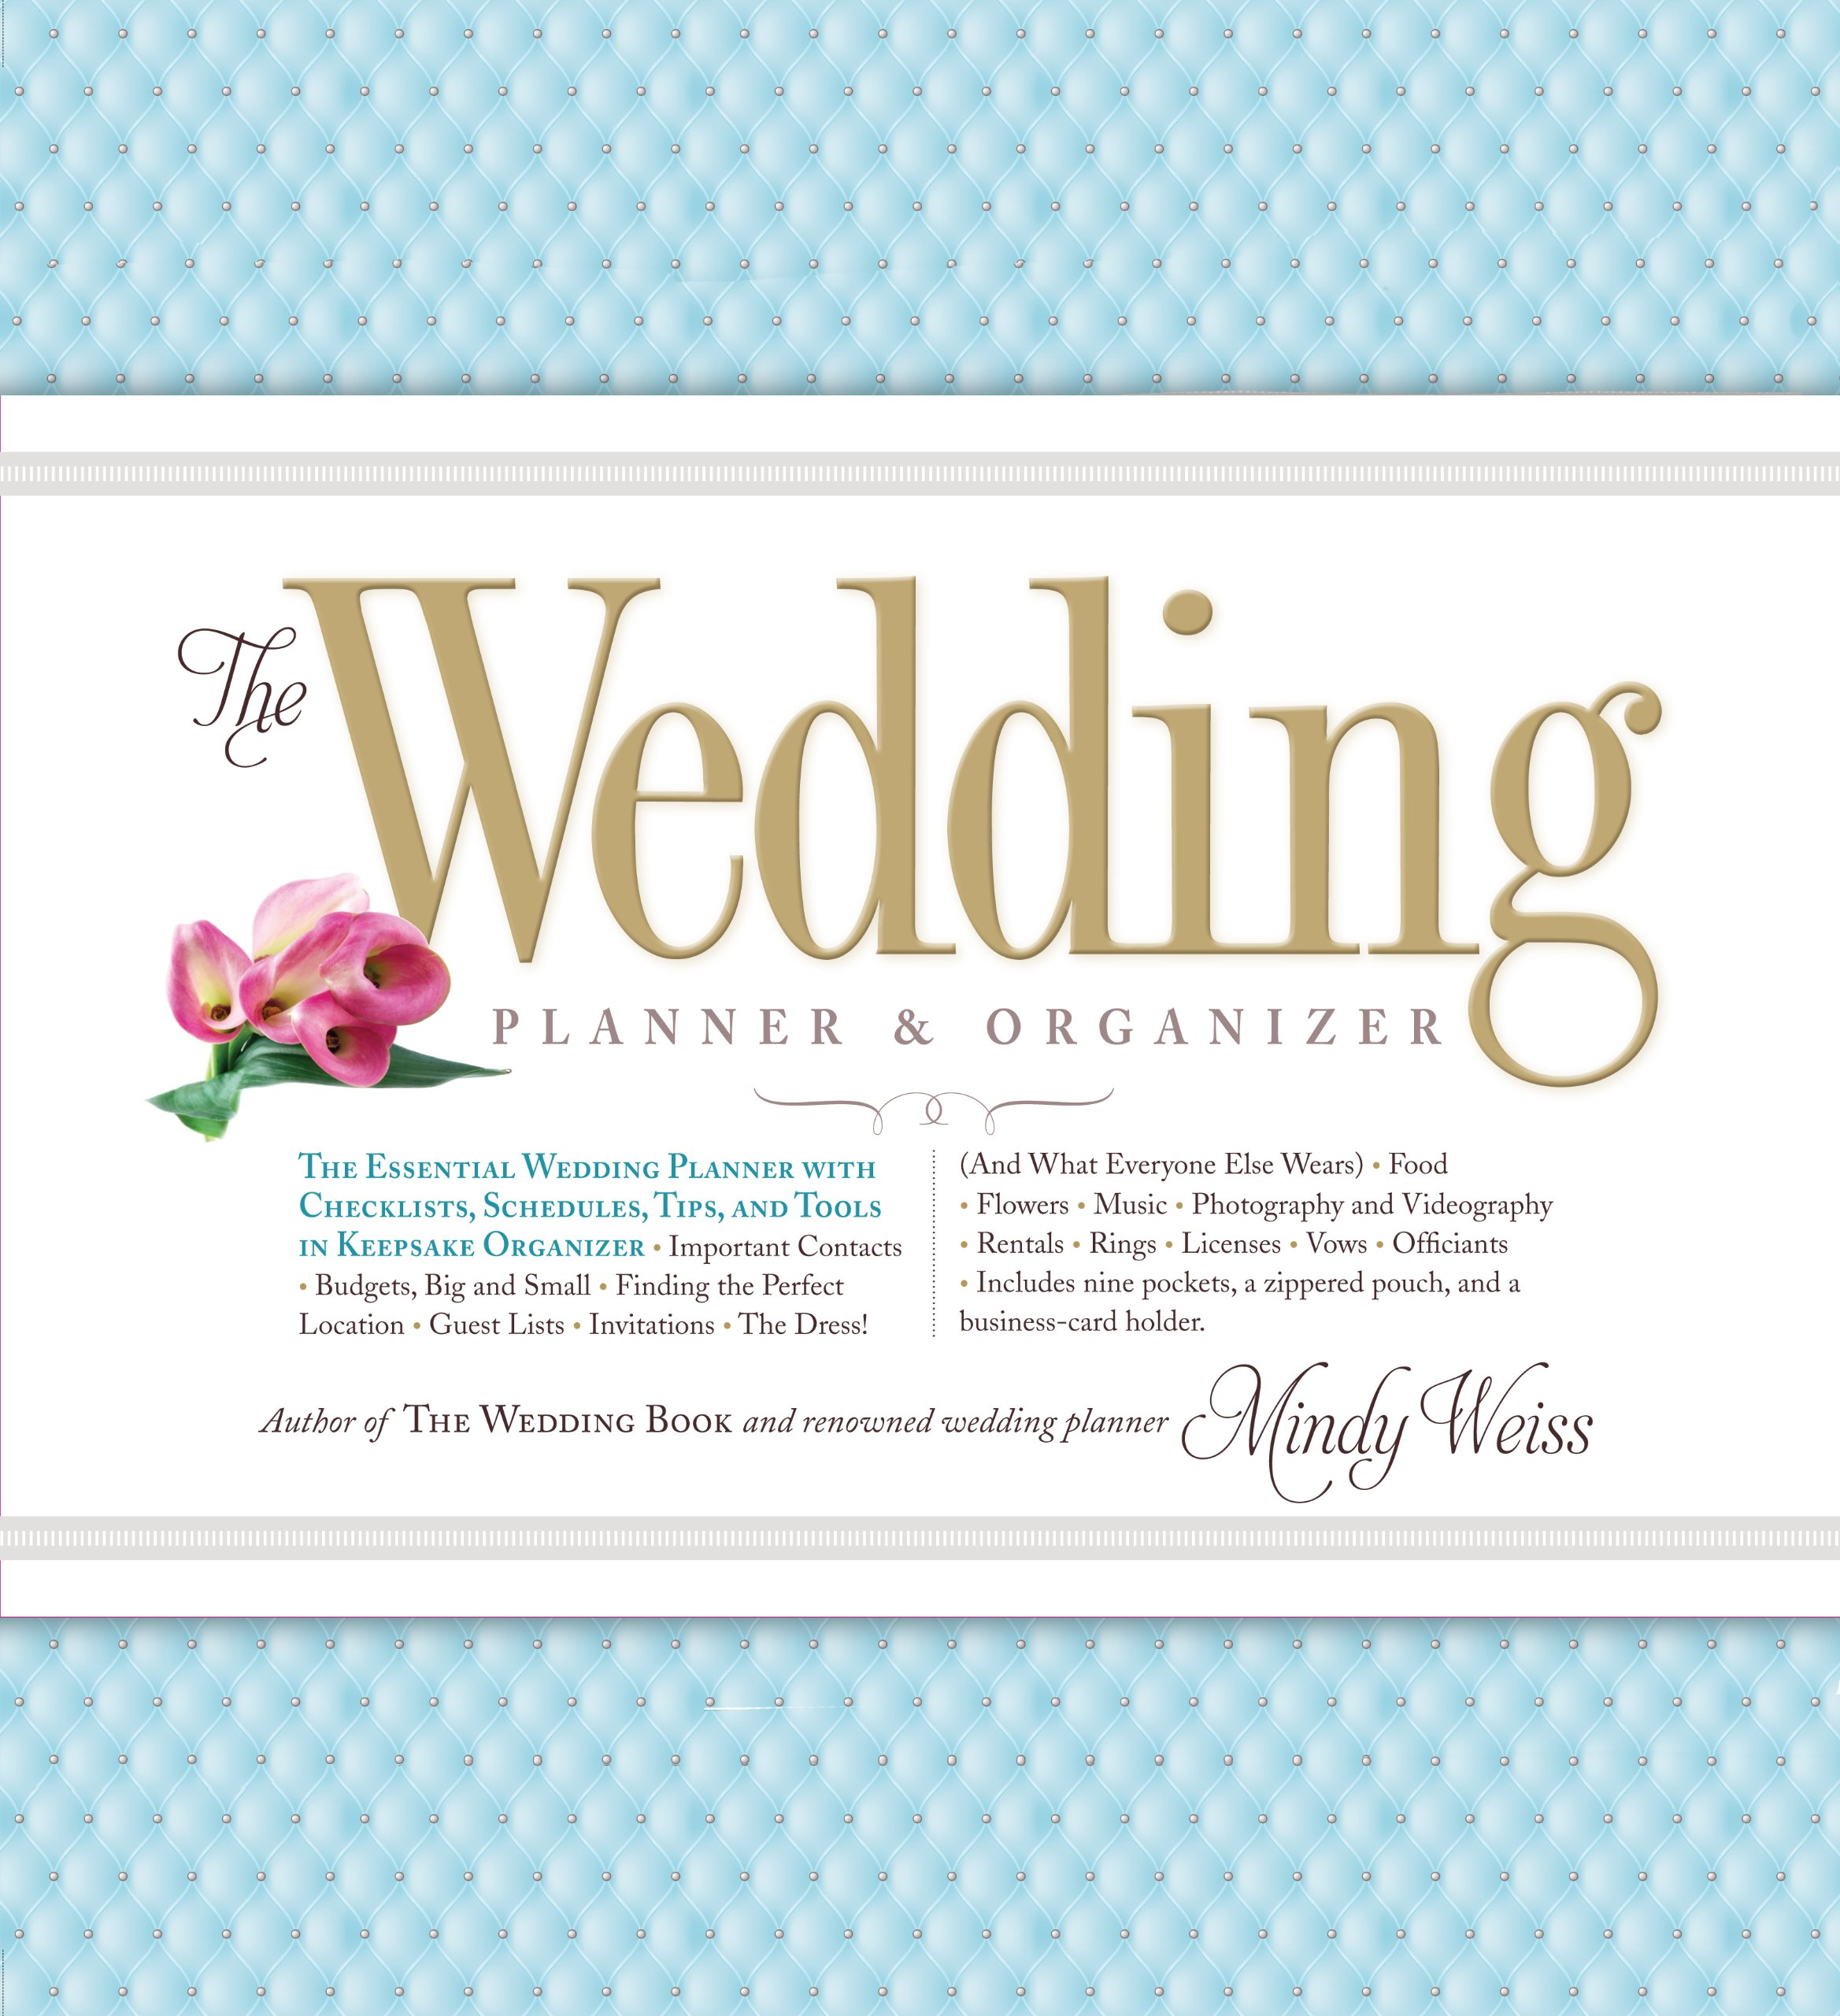 the wedding planner organizer mindy weiss